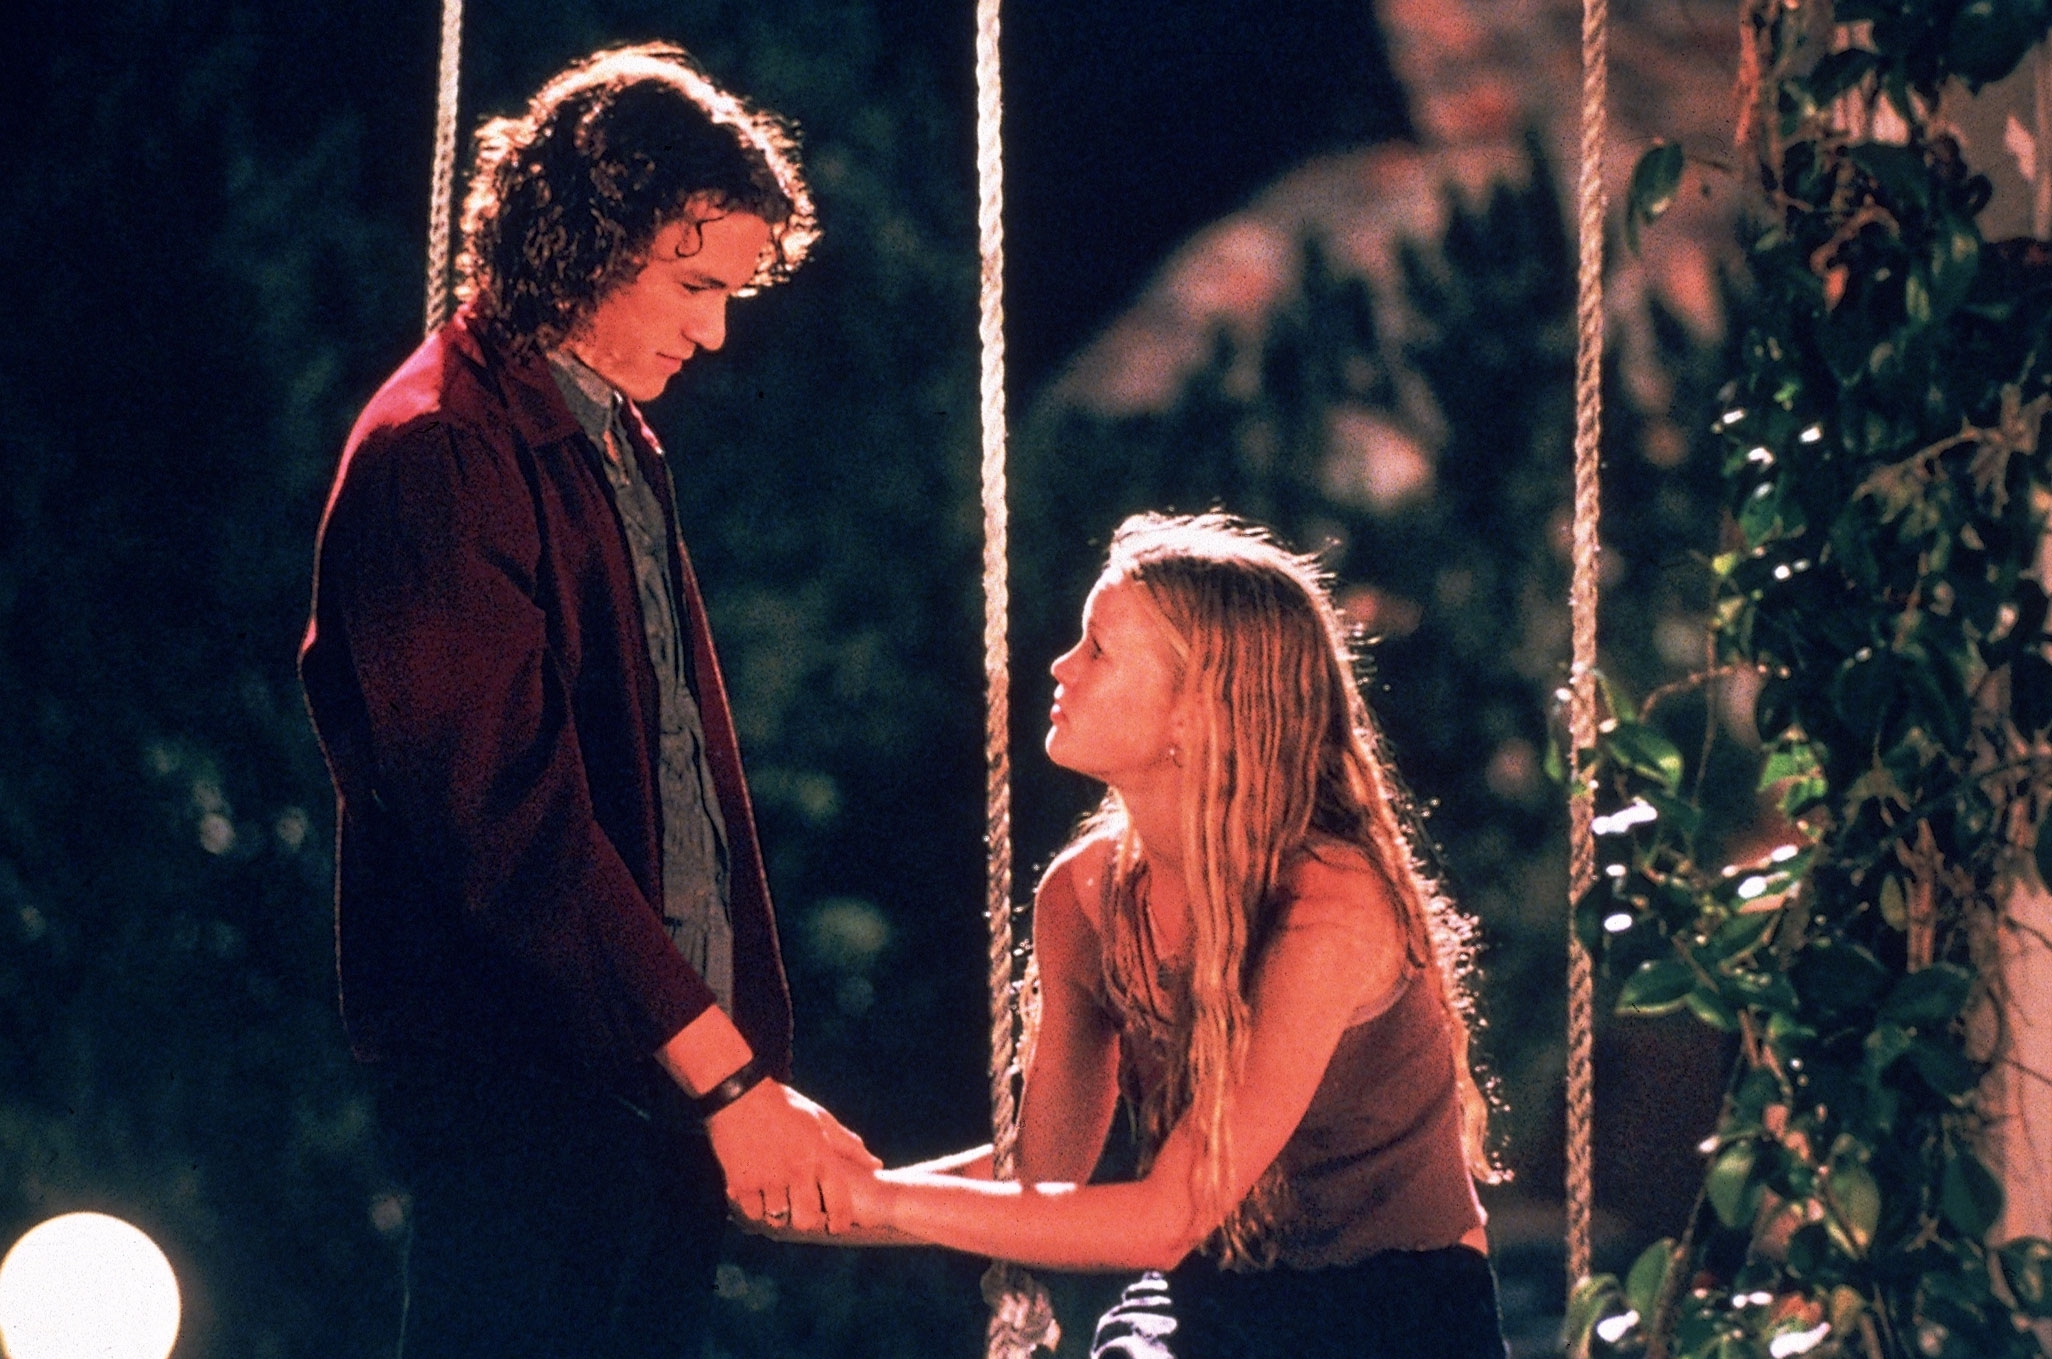 Patrick (Ledger) tames the shrew in '10 Things I Hate About You'